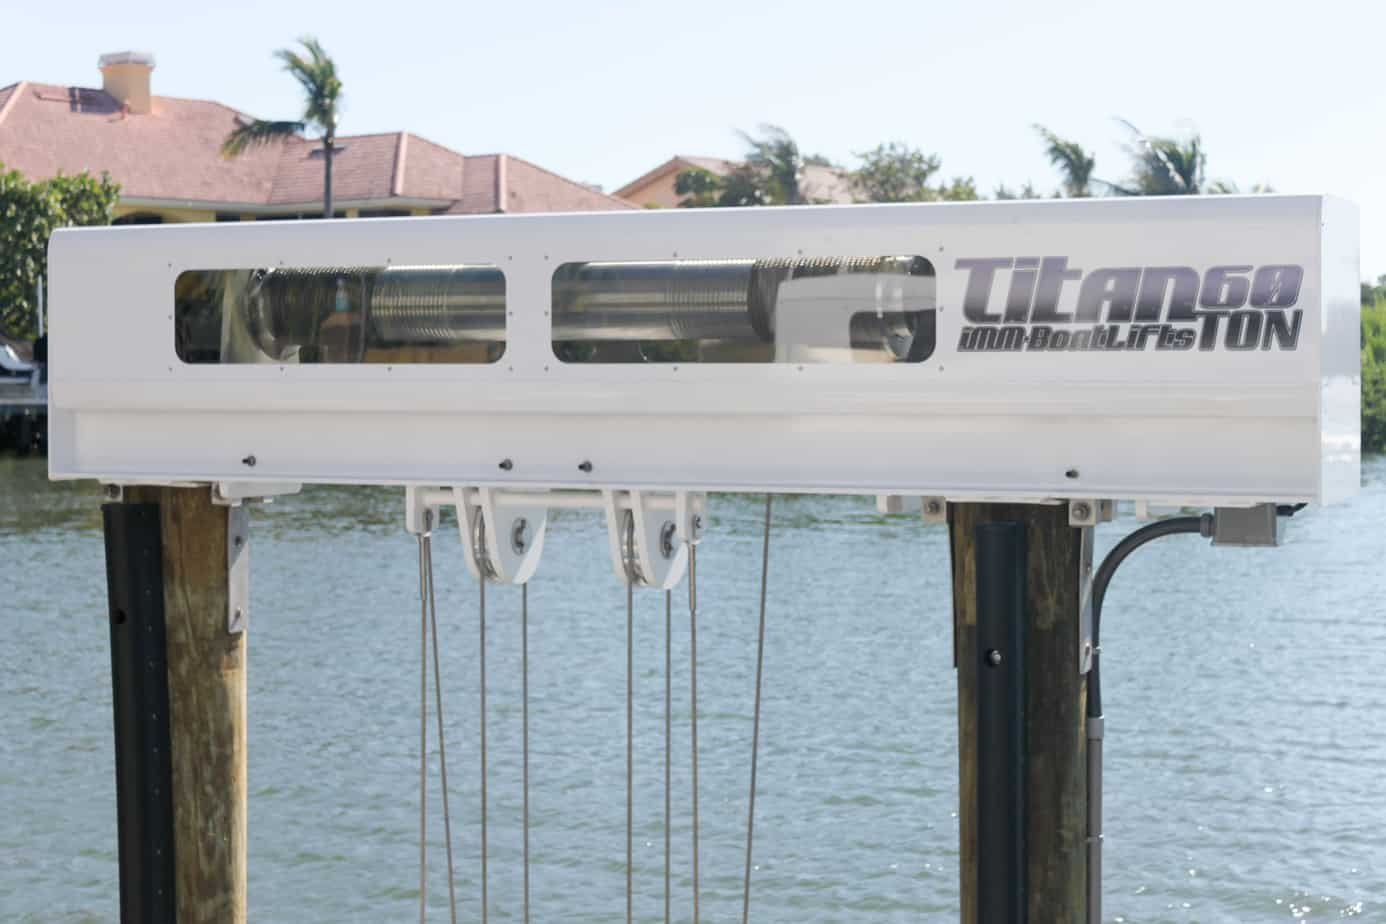 How to Pick the Best Boat Coverings By Fabric Type - image patented-technology-Titan-Beam on https://www.iqboatlifts.com